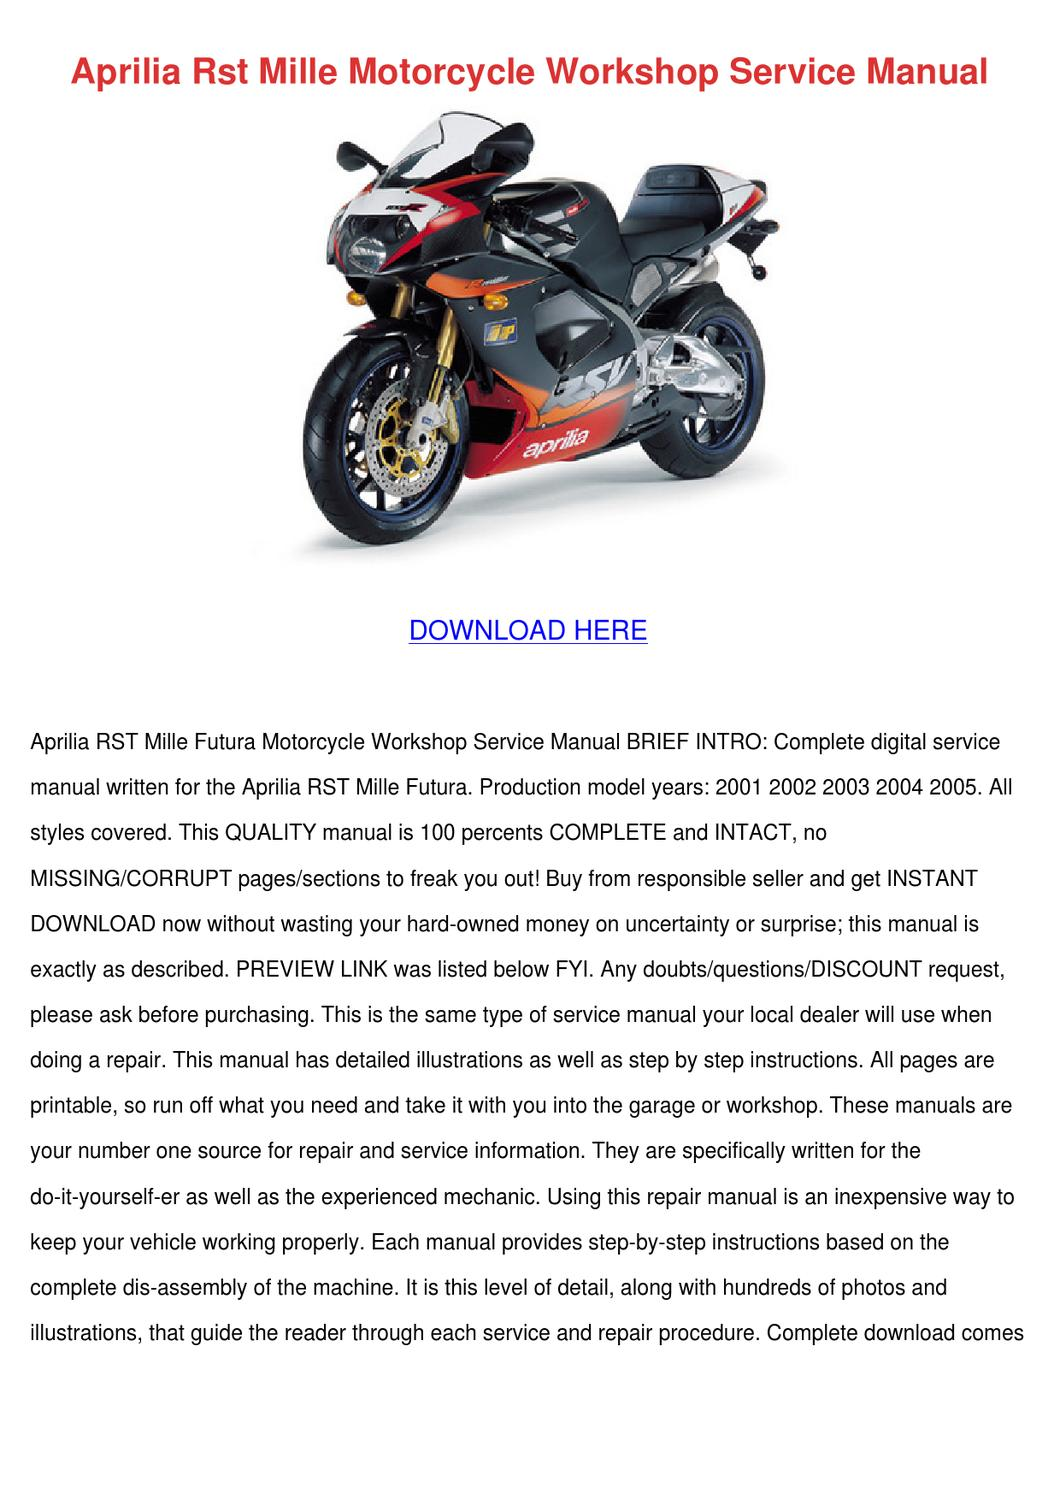 Aprilia Rst Mille Motorcycle Workshop Service by Charlyn Obst - issuu